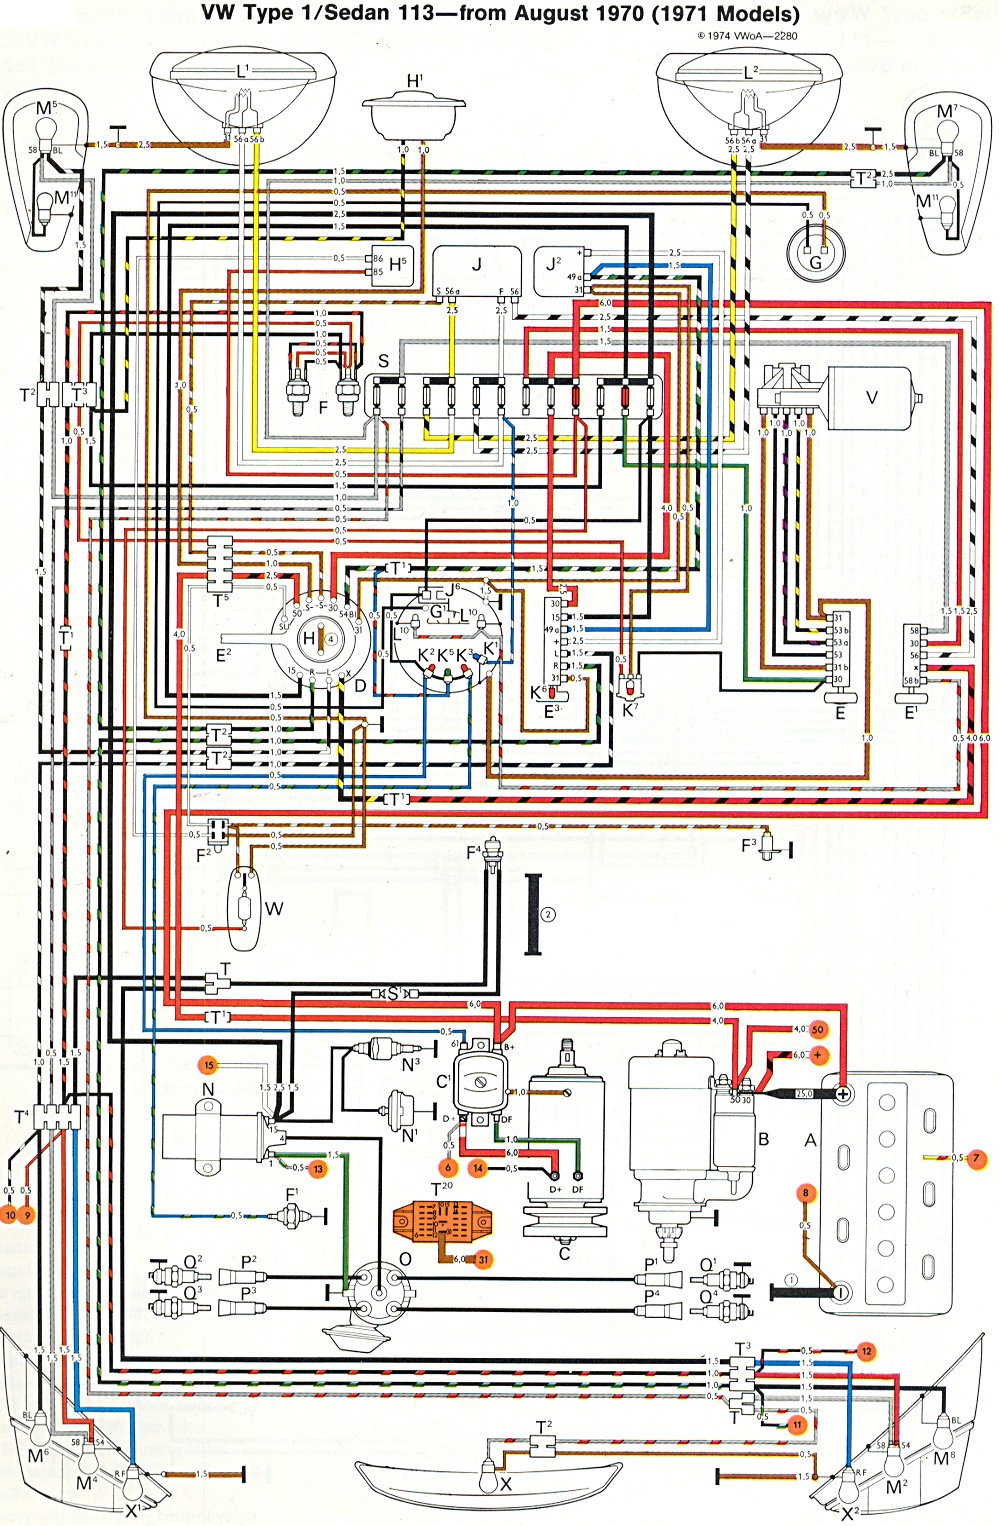 1969 Vw Bug Wiring Schematic Thesamba Com Type 1 Wiring Diagrams